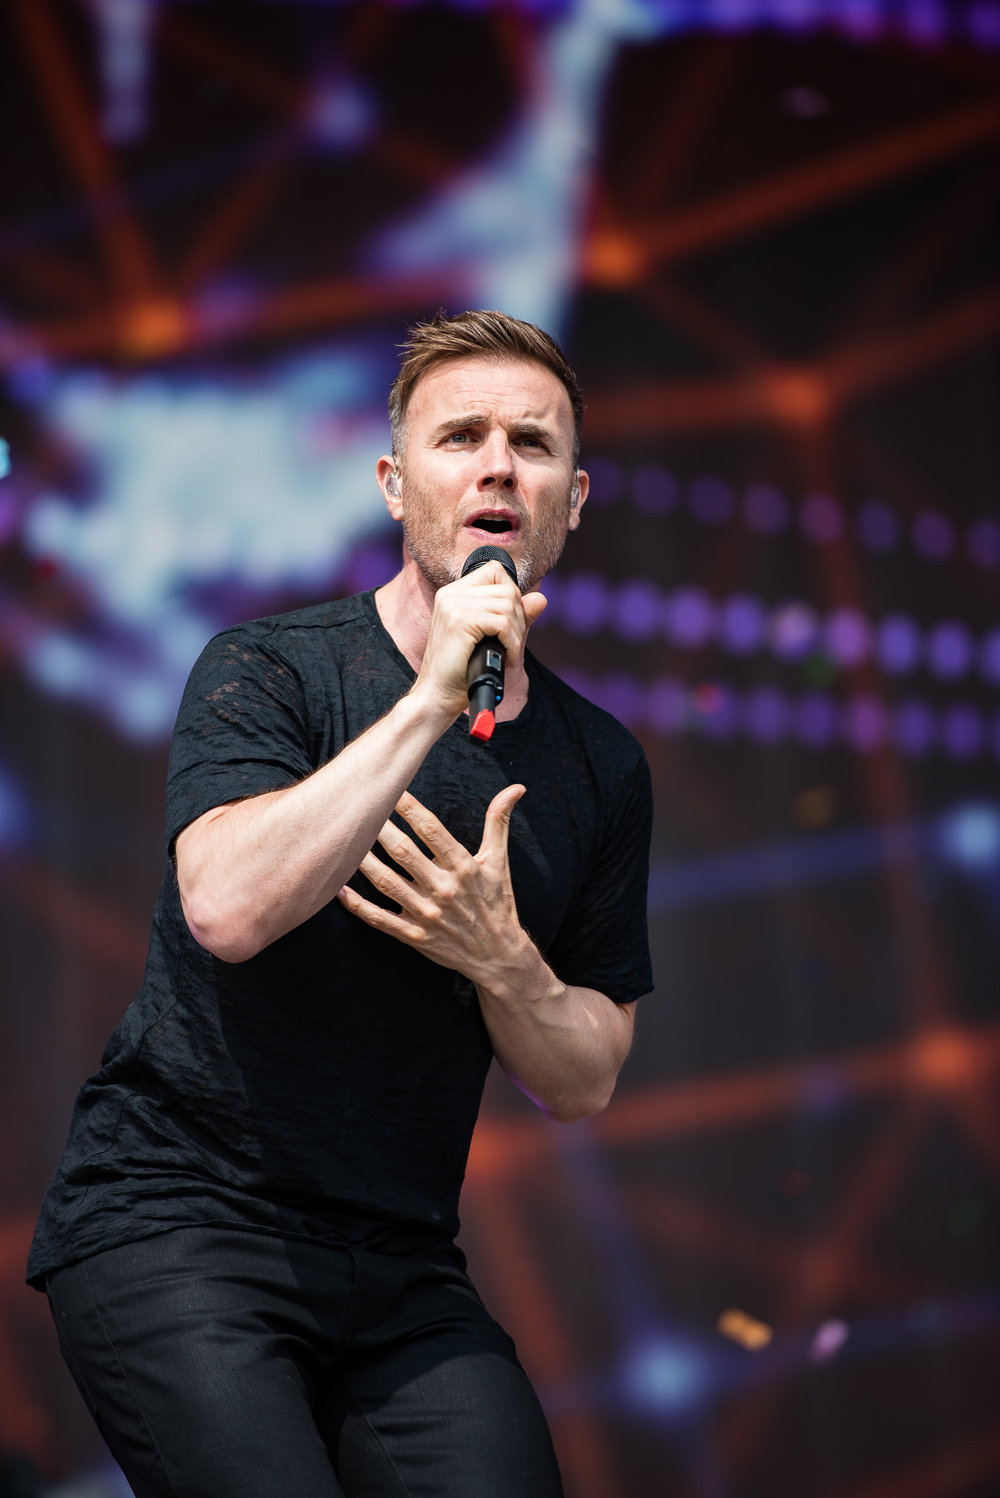 Gary Barlow / Take That